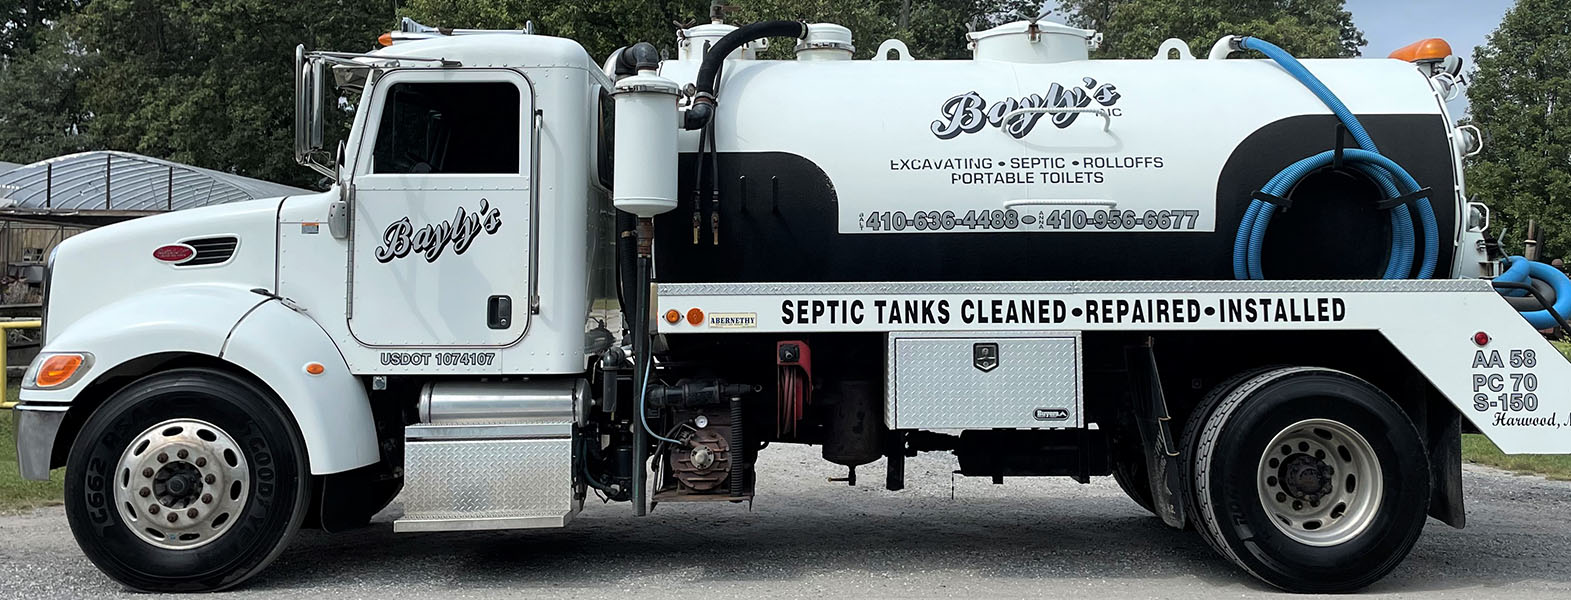 Pasadena Septic Tank Cleaning, Septic Company and Dumpster Cleaning